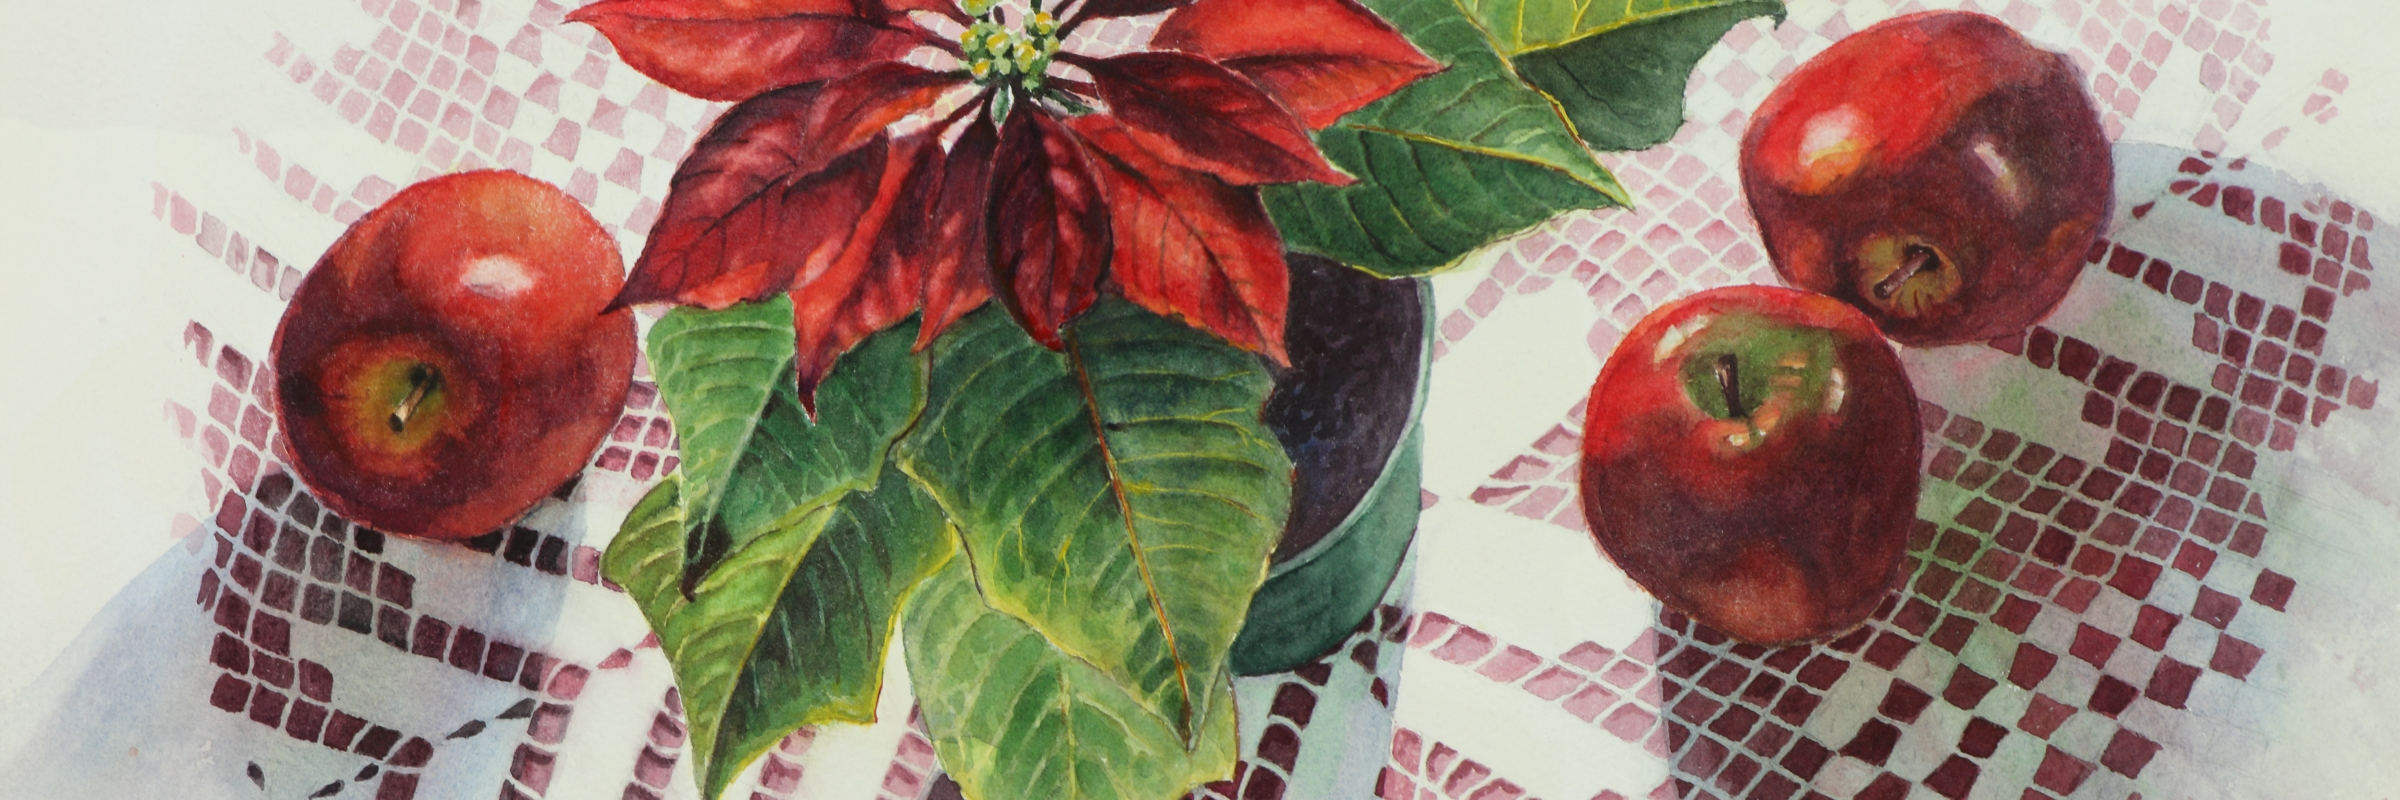 apples_and_poinsettia_slider